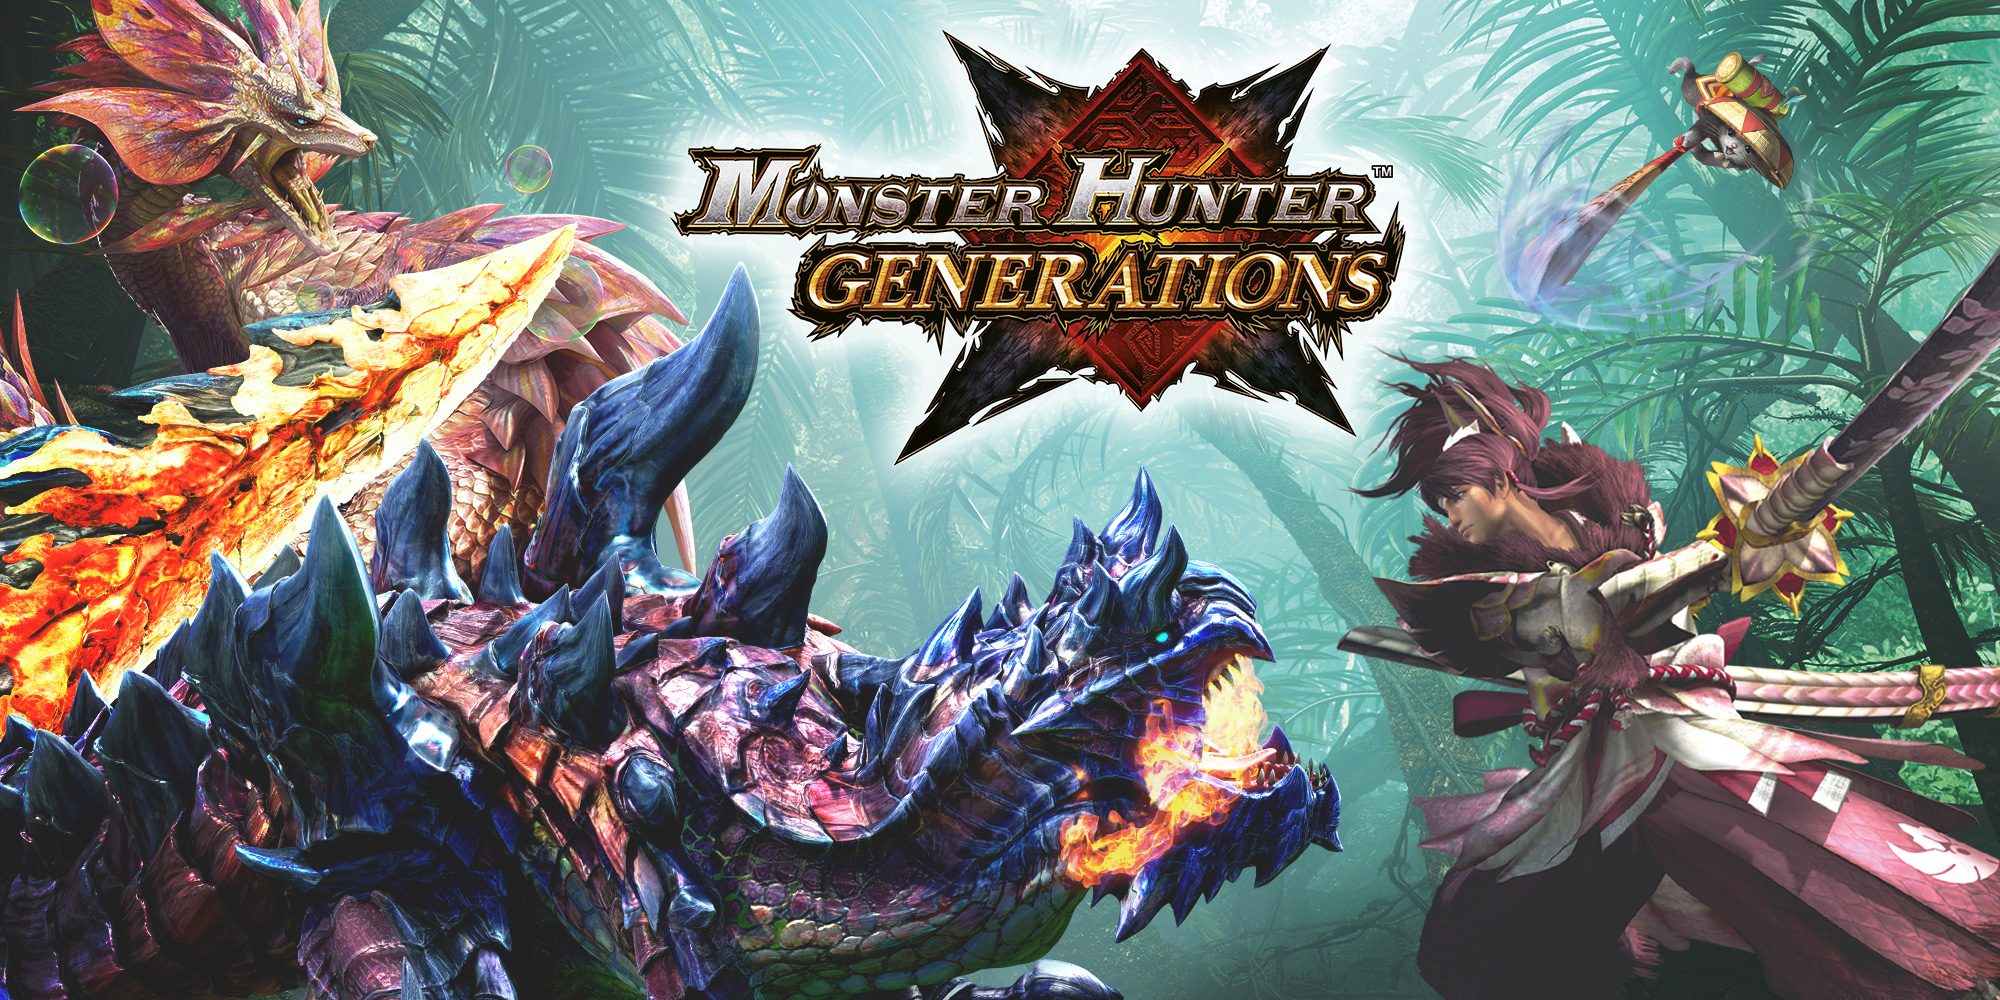 http://globalgame.ch/?q=search/node/monster%20hunter/